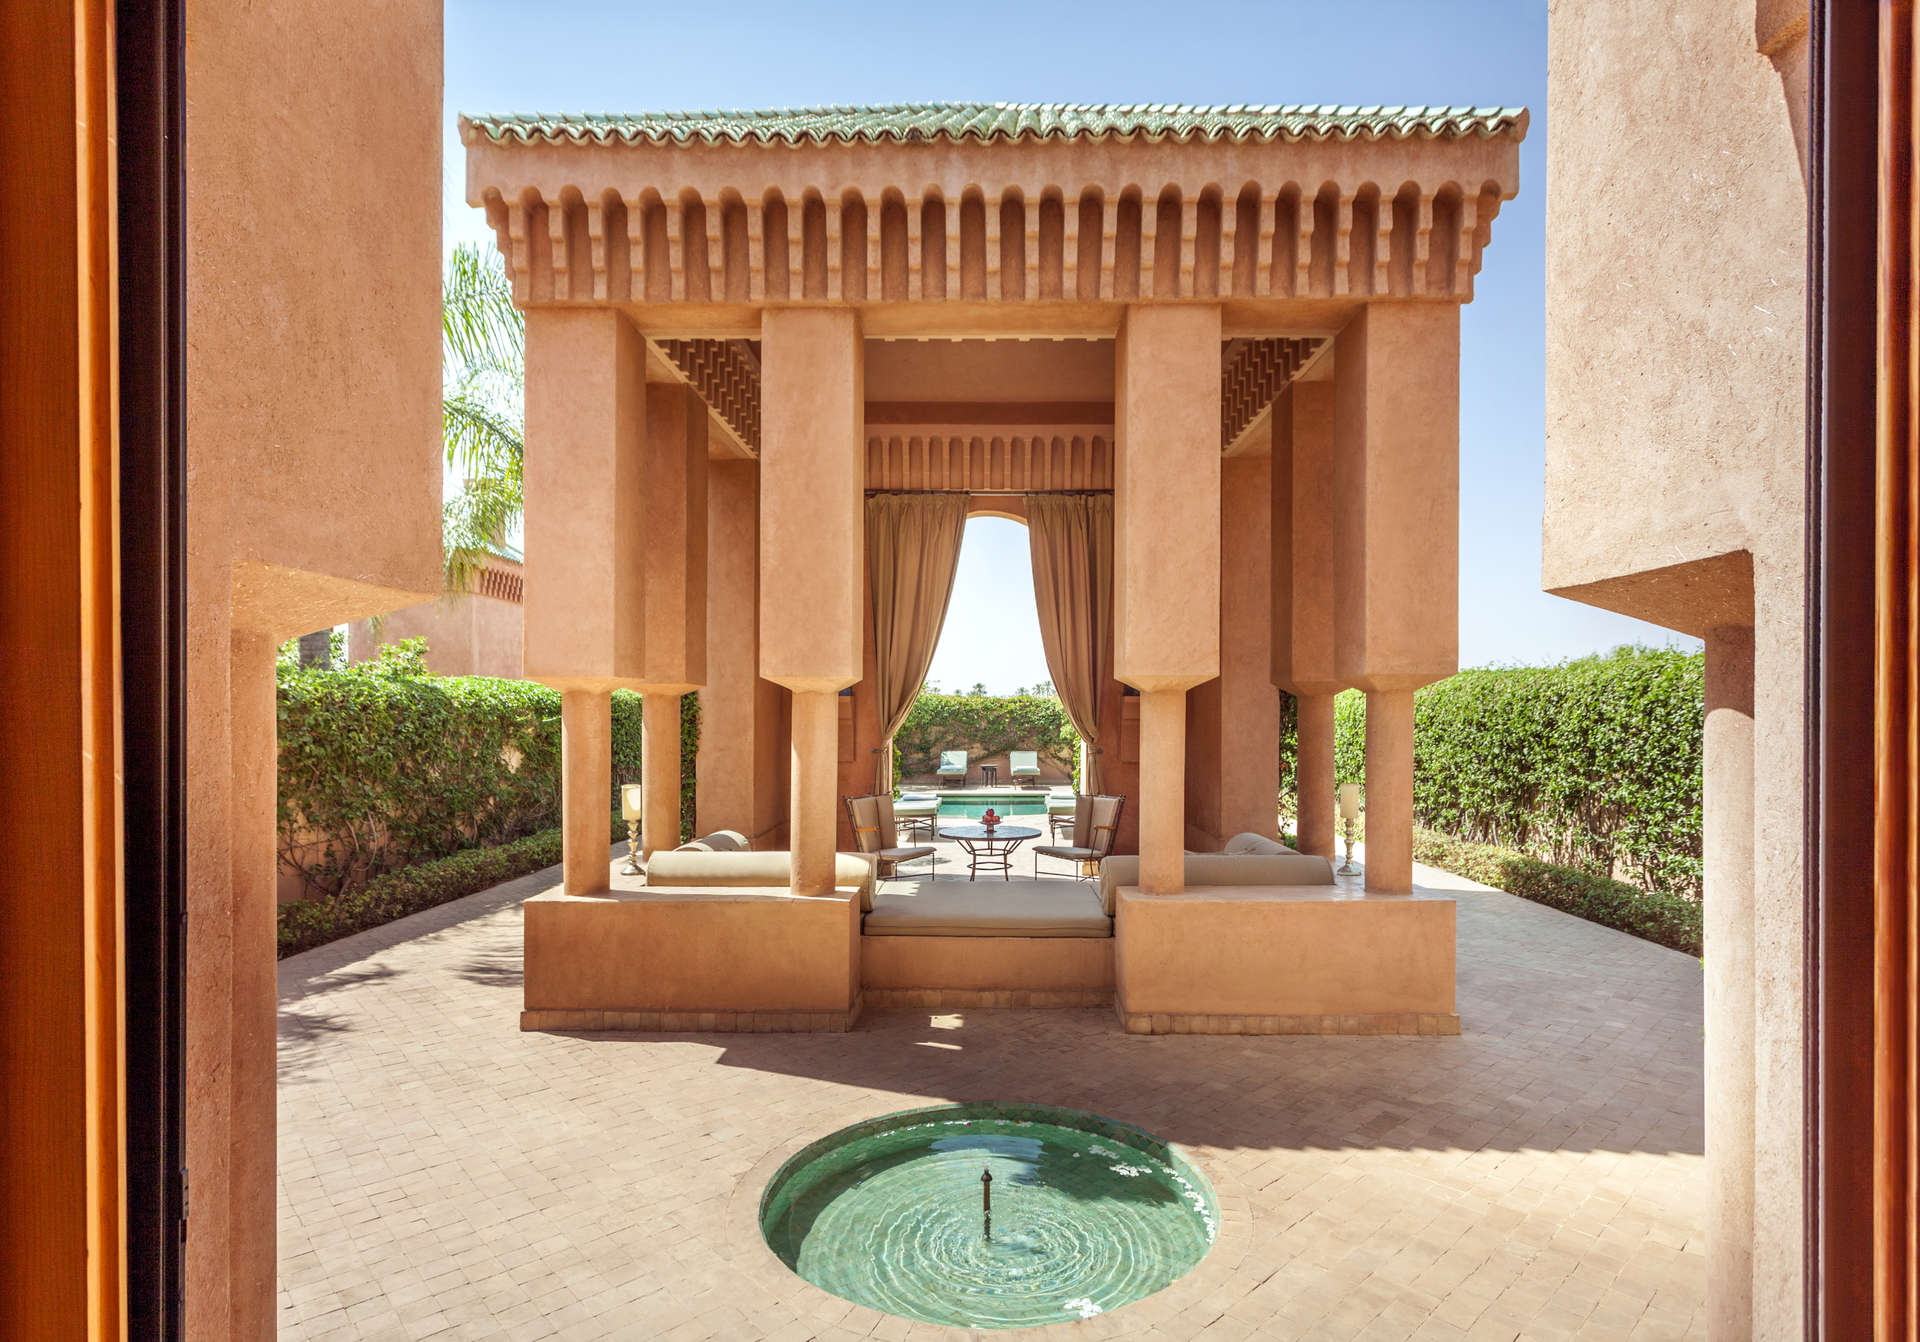 Luxury villa rentals africa - Morocco - Marrakesh - No location 4 - Pavilion Piscine | Amanjena - Image 1/4